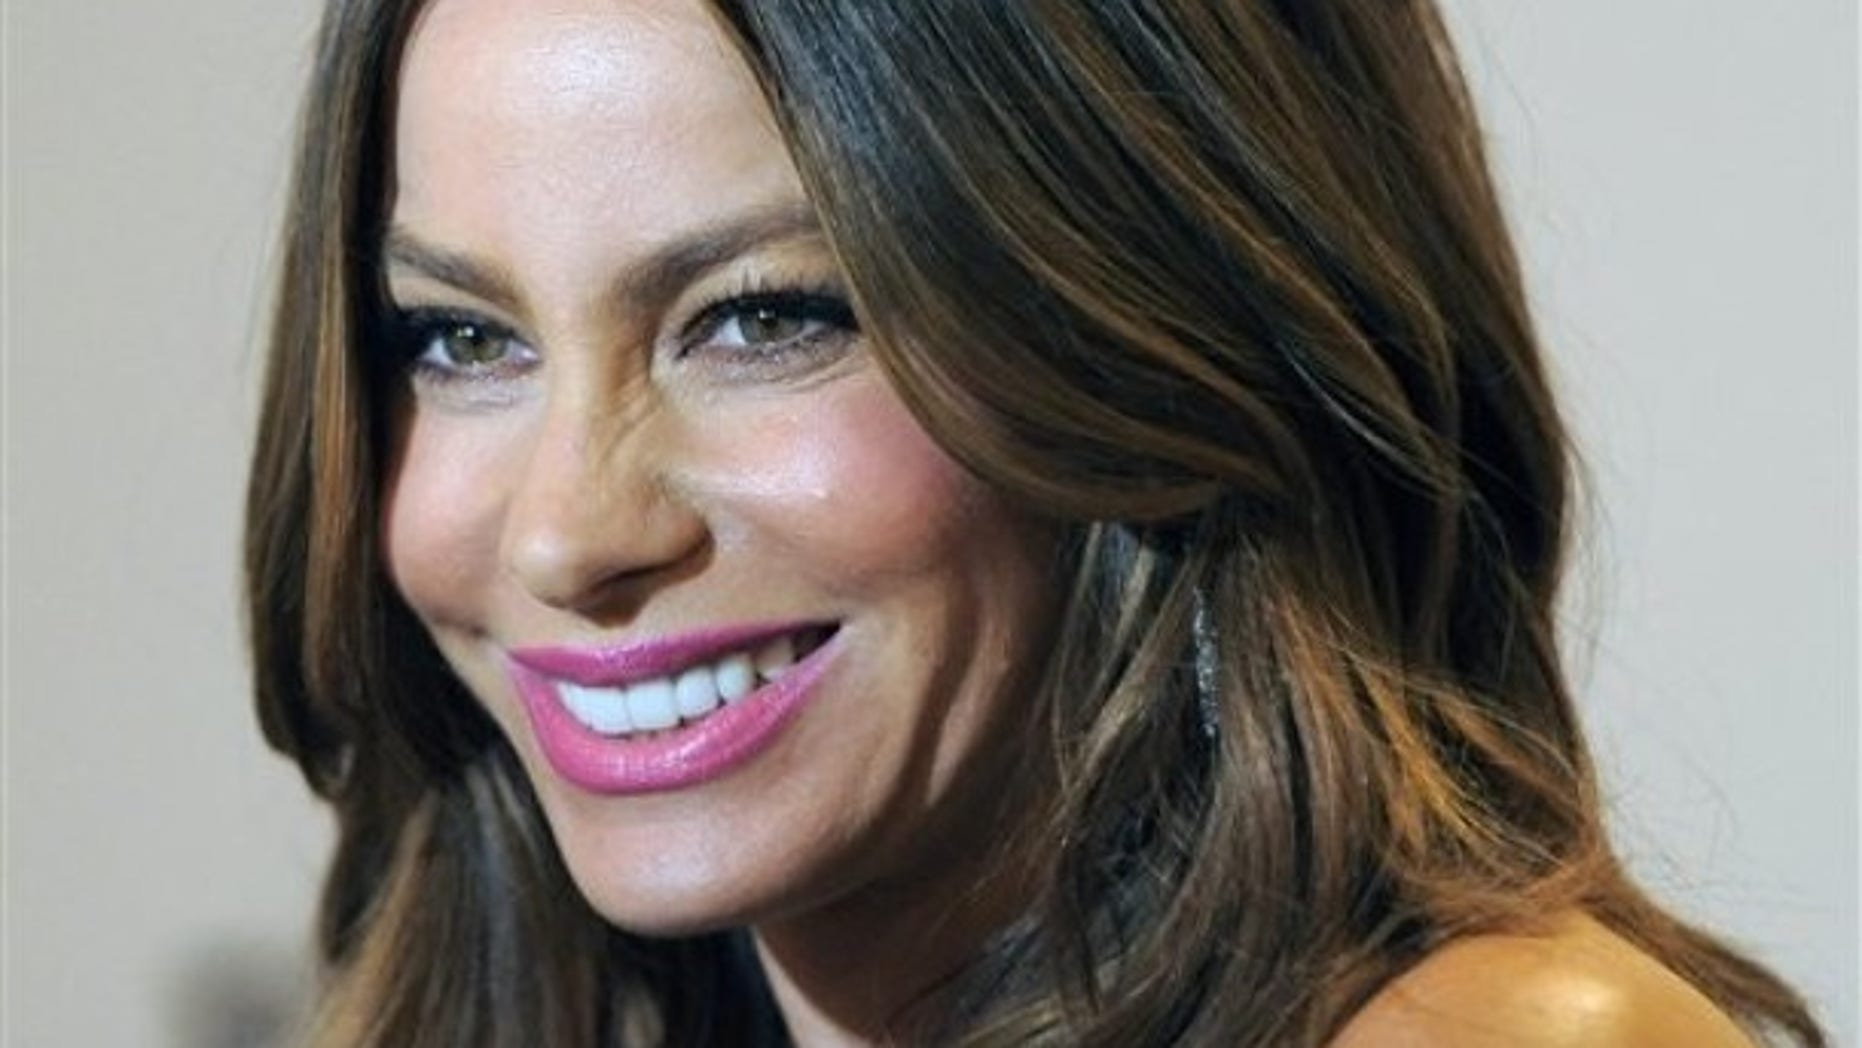 """Sofia Vergara, a cast member in the television series """"Modern Family,"""" poses before the PaleyFest 2012 panel discussion on the show, Wednesday, March 14, 2012, in Beverly Hills, Calif. (AP Photo/Chris Pizzello)"""